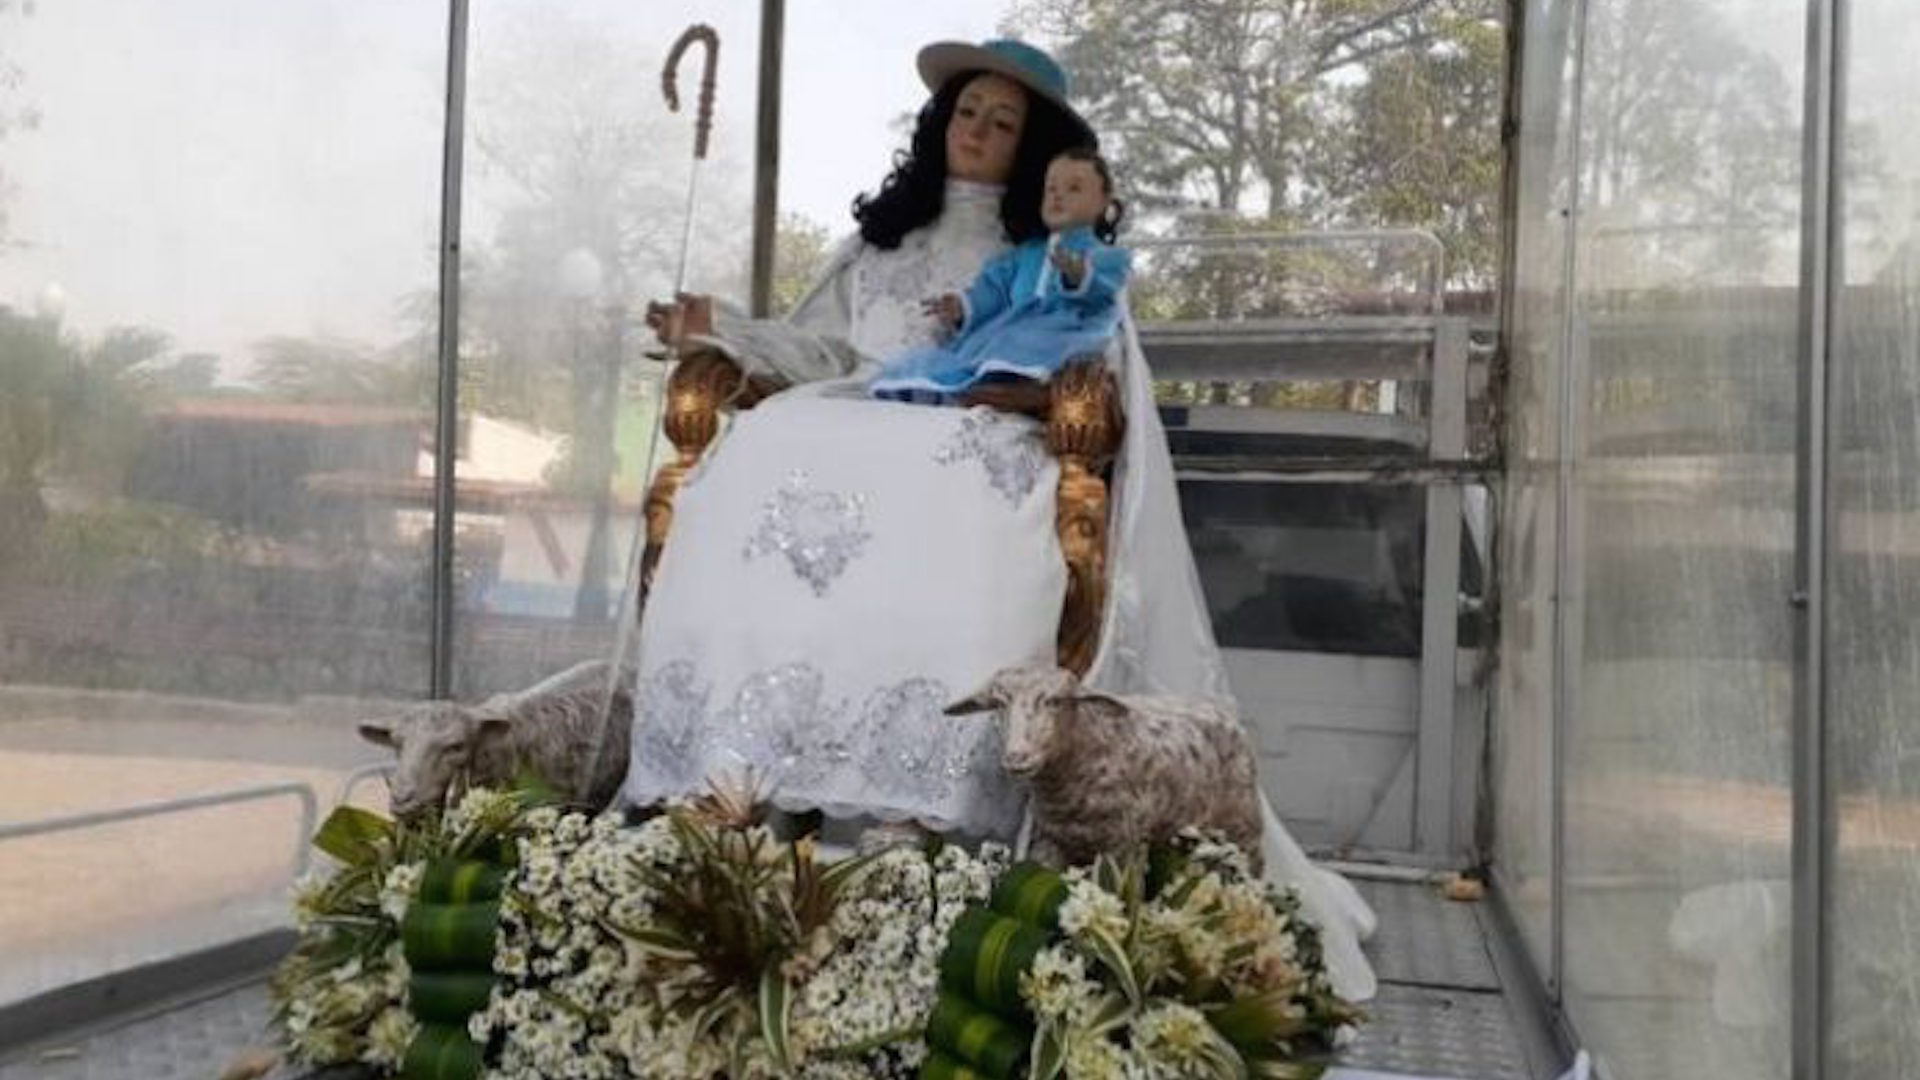 Divina Pastora recorre calles de Barquisimeto en medio de pandemia de covid-19